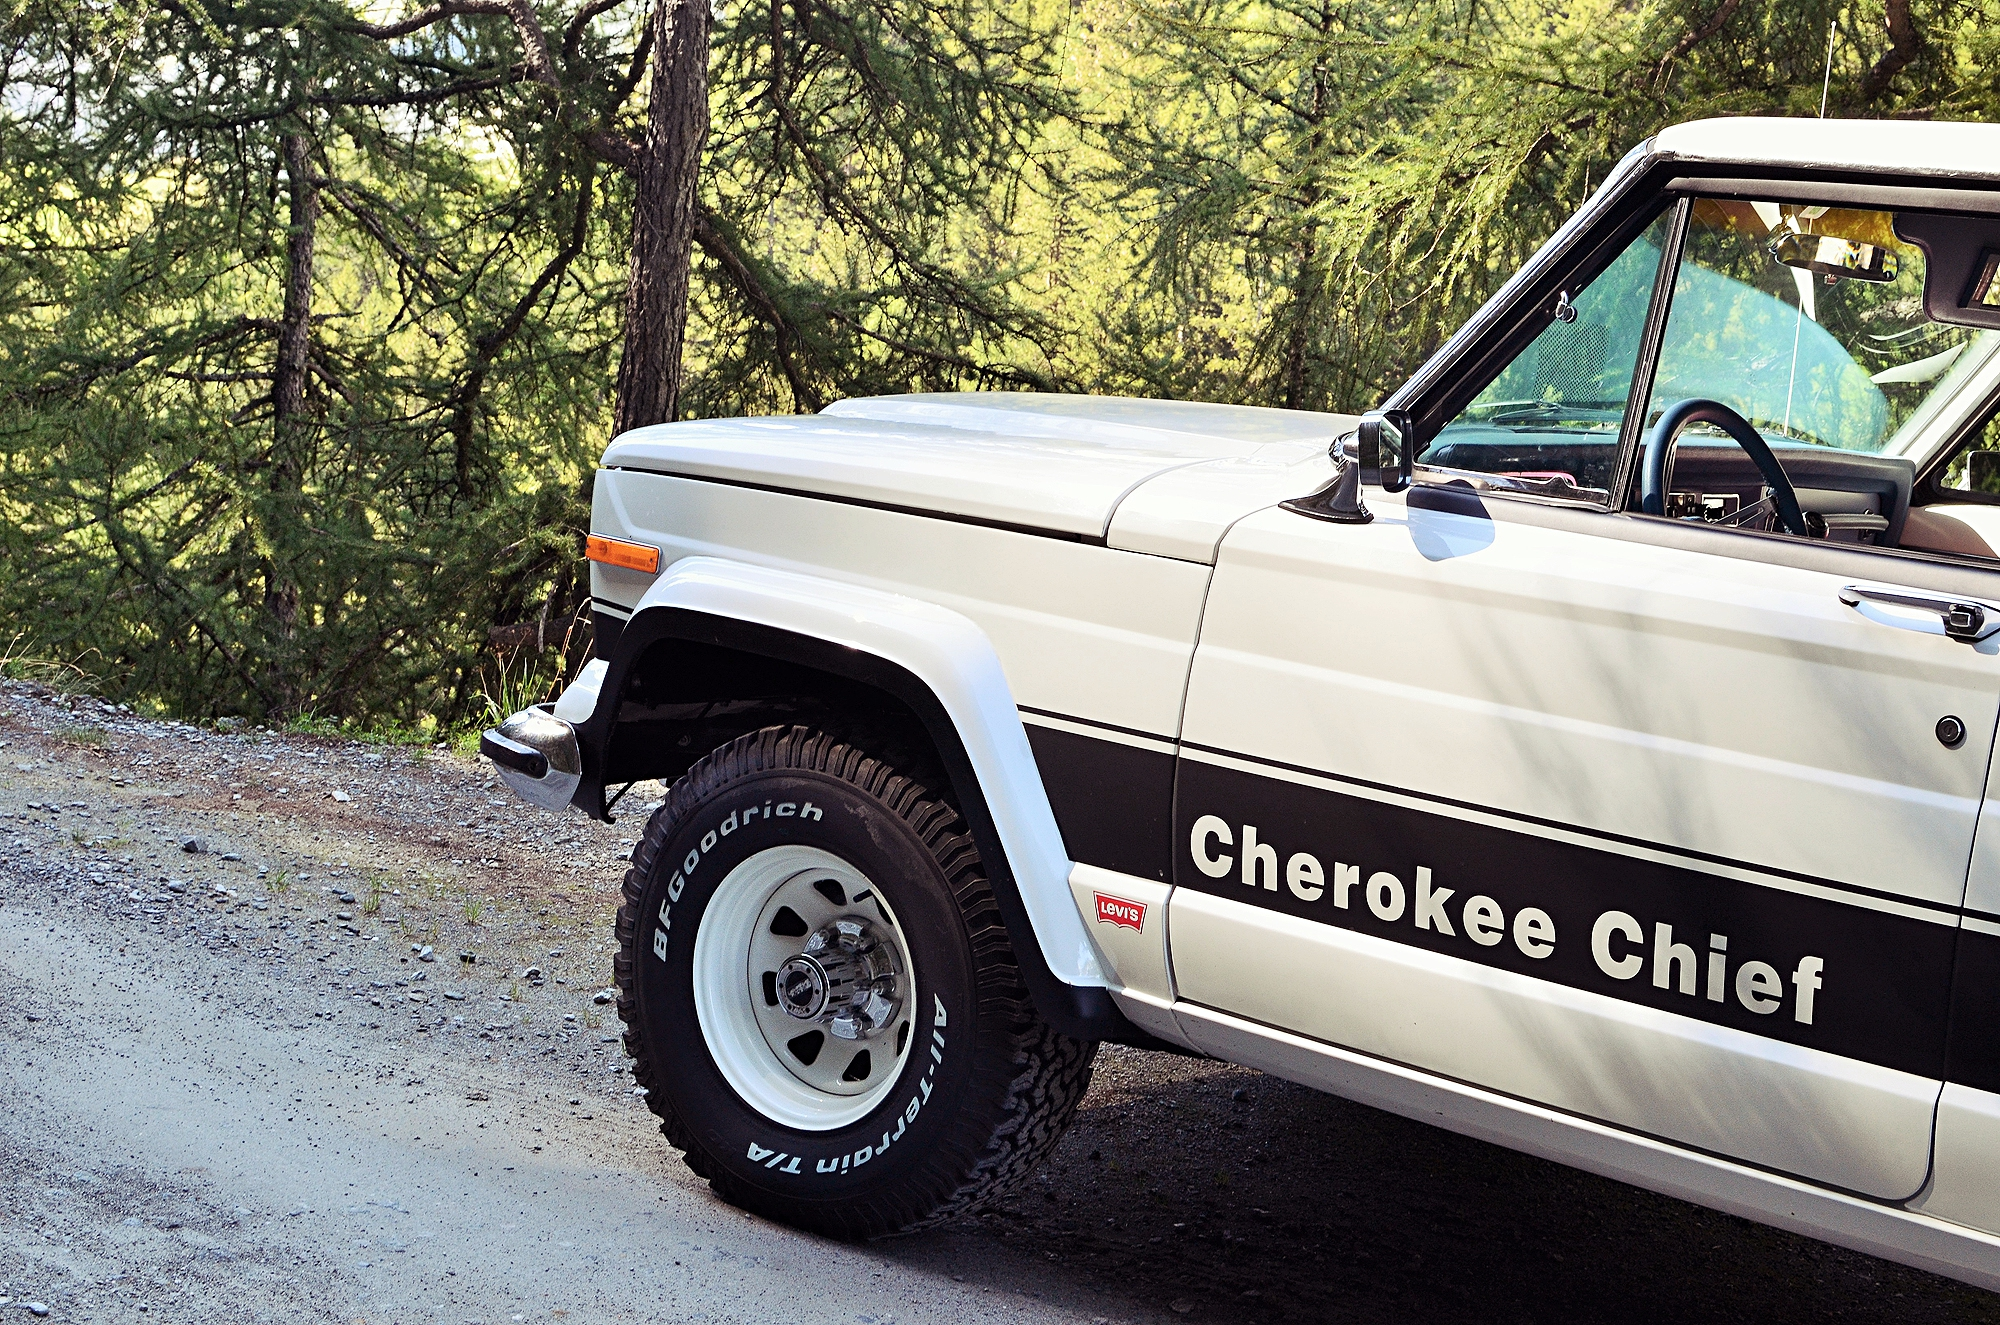 jeep-cherokee-chief-shooting-26.jpg